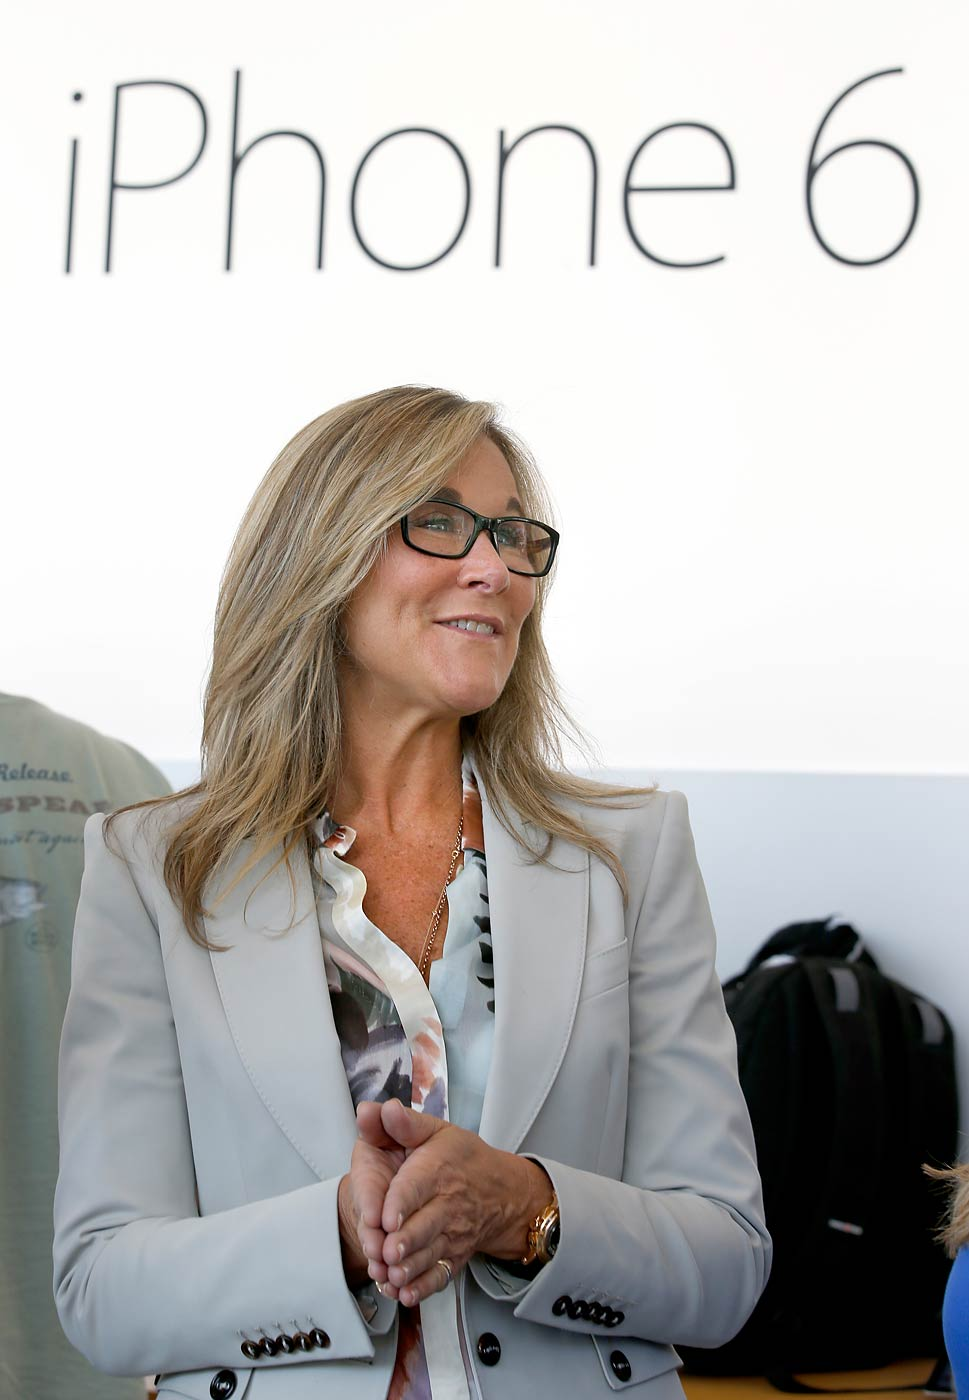 Angela Ahrendts, senior vice president of retail and online stores at Apple Inc., walks through the Apple Store during the launch and sale of the new iPhone 6 on Sept 19, 2014, in Palo Alto, Calif.